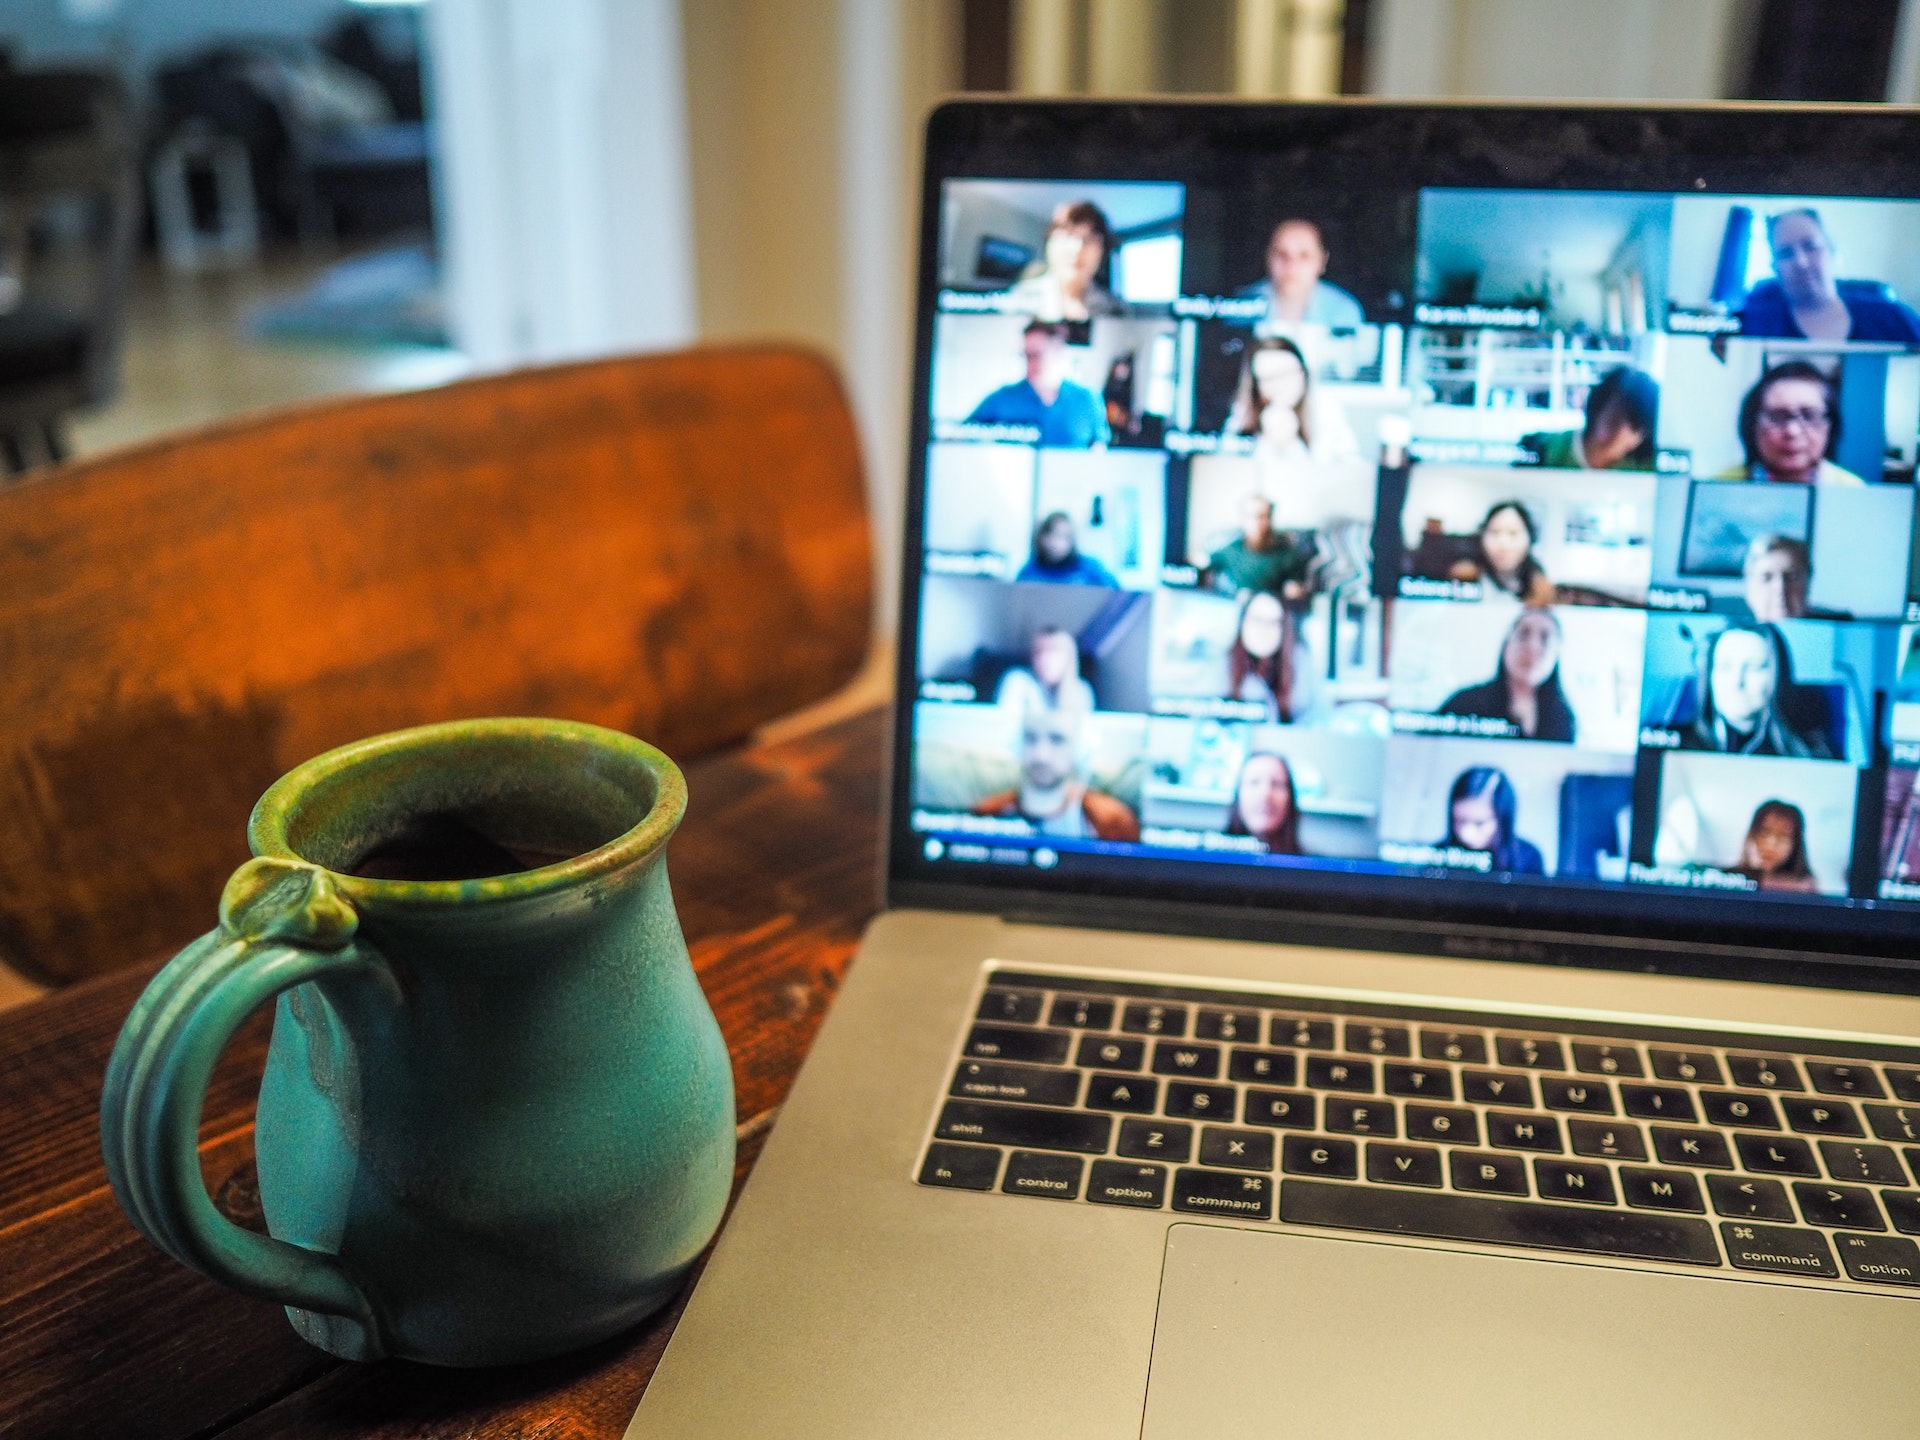 a laptop open to zoom with a mug sitting next to it